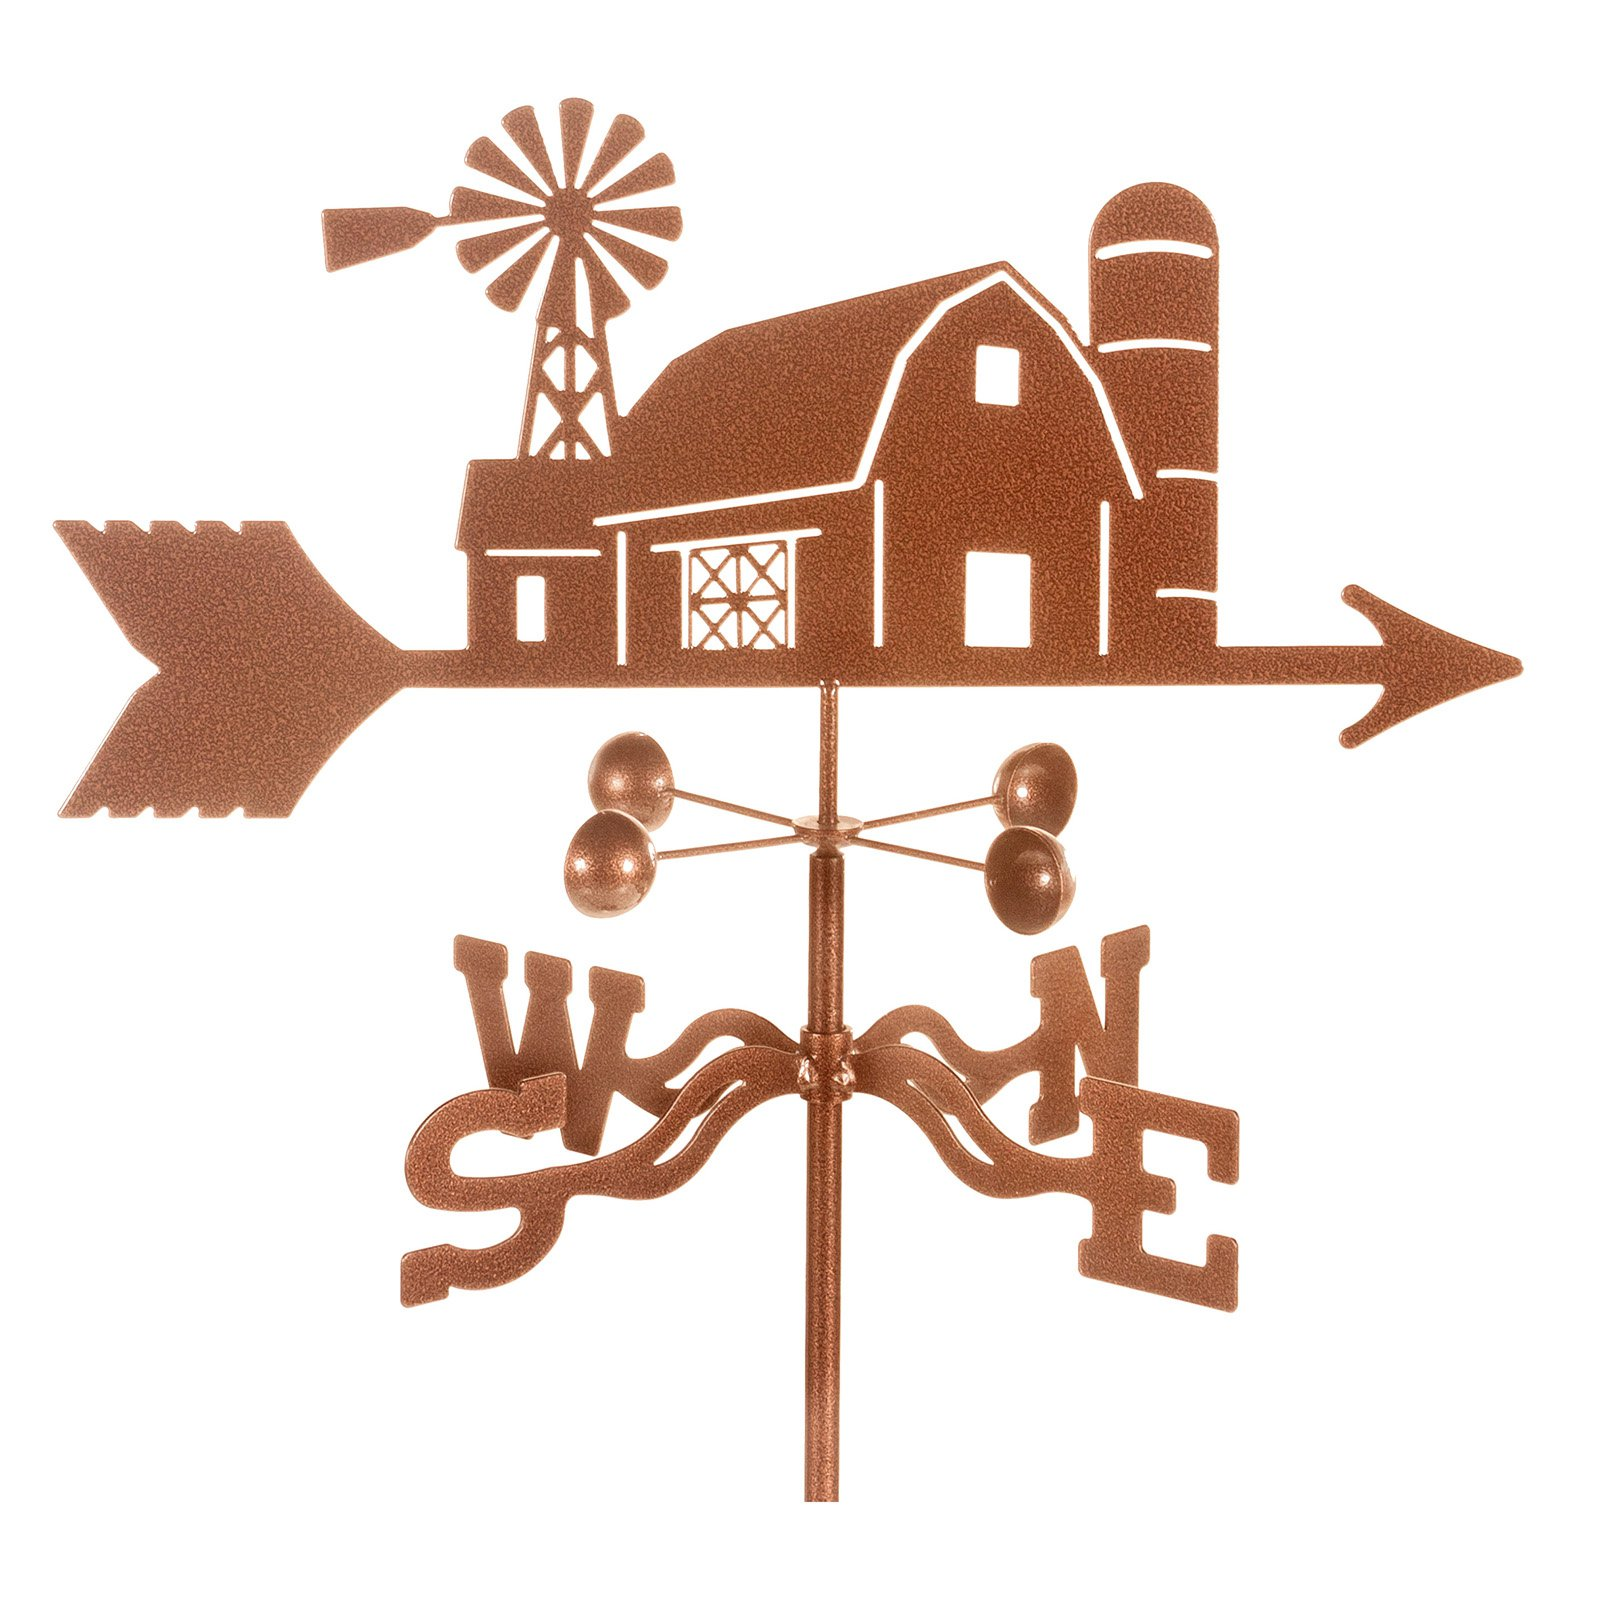 EZ Vane Farm Scene Weathervane by EZ Vane